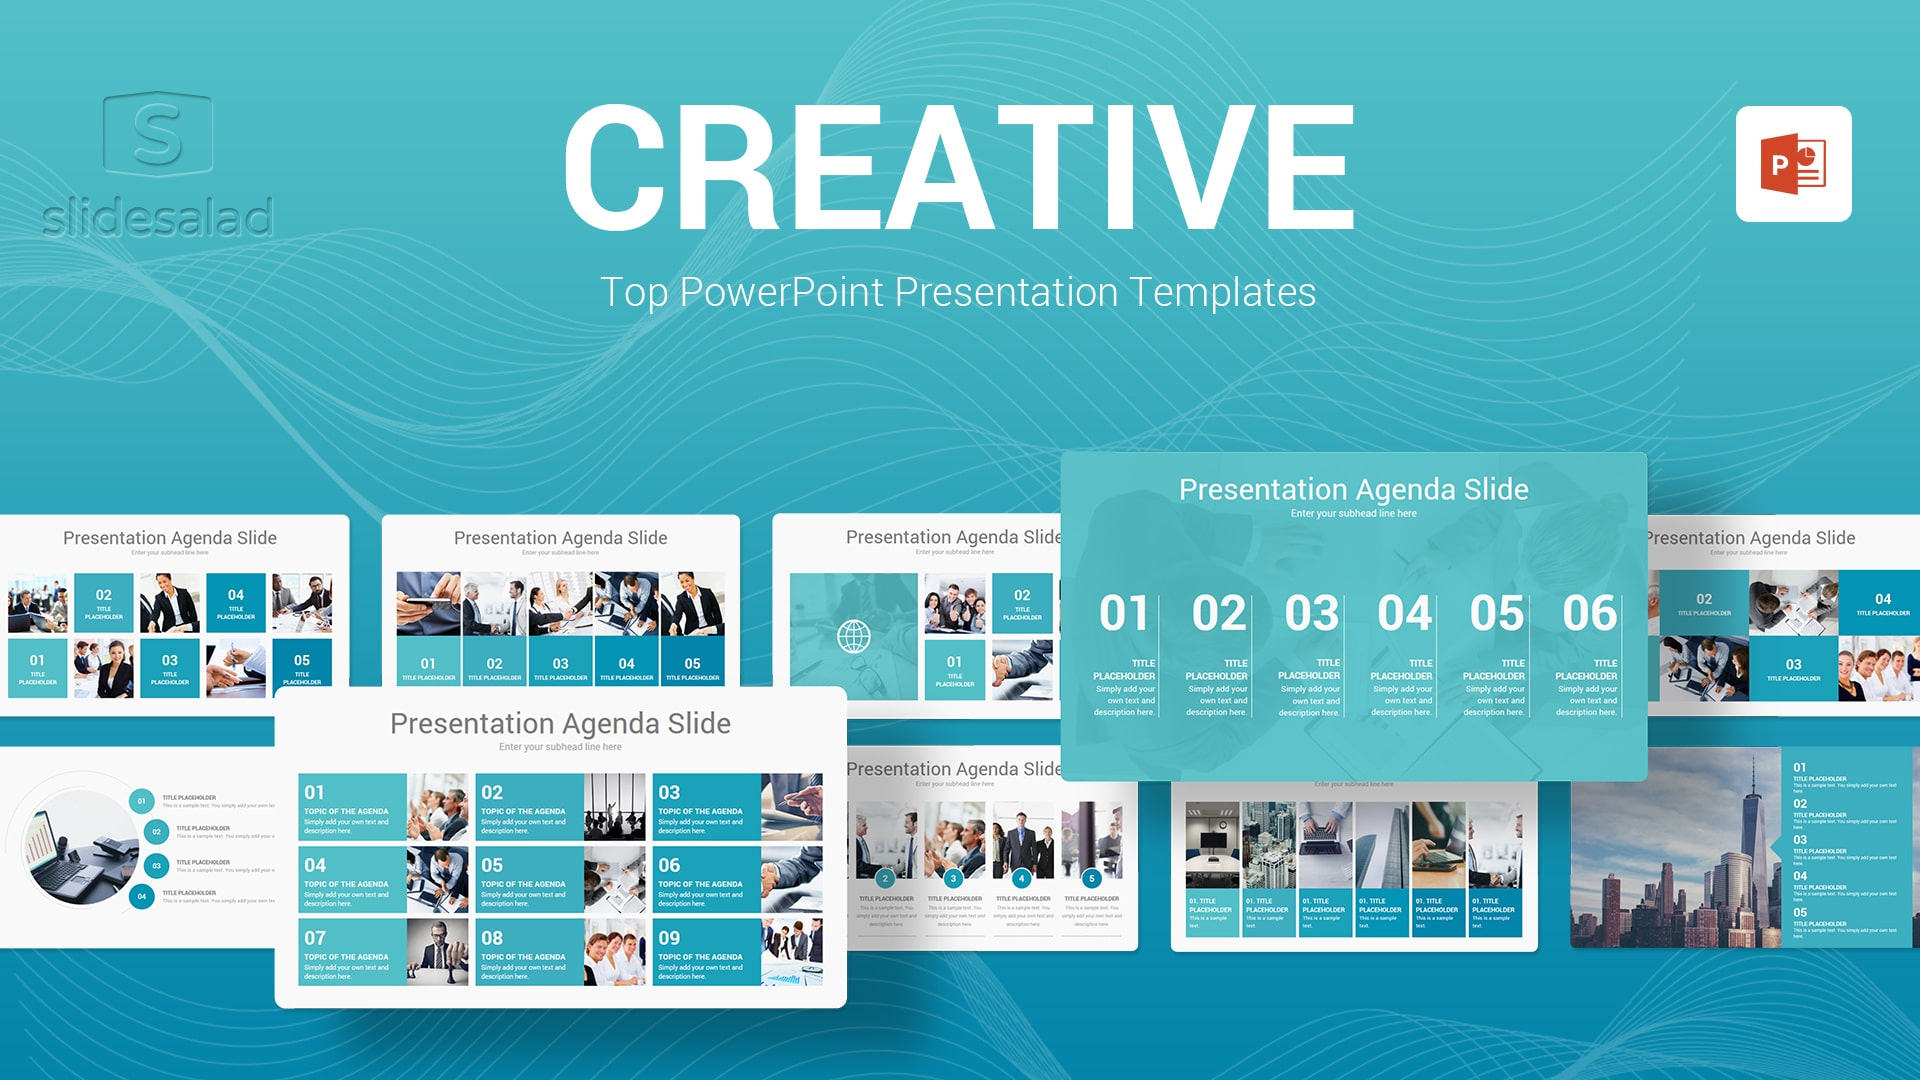 Creative PowerPoint Presentation Template - Attractive PPT Slideshows Templates